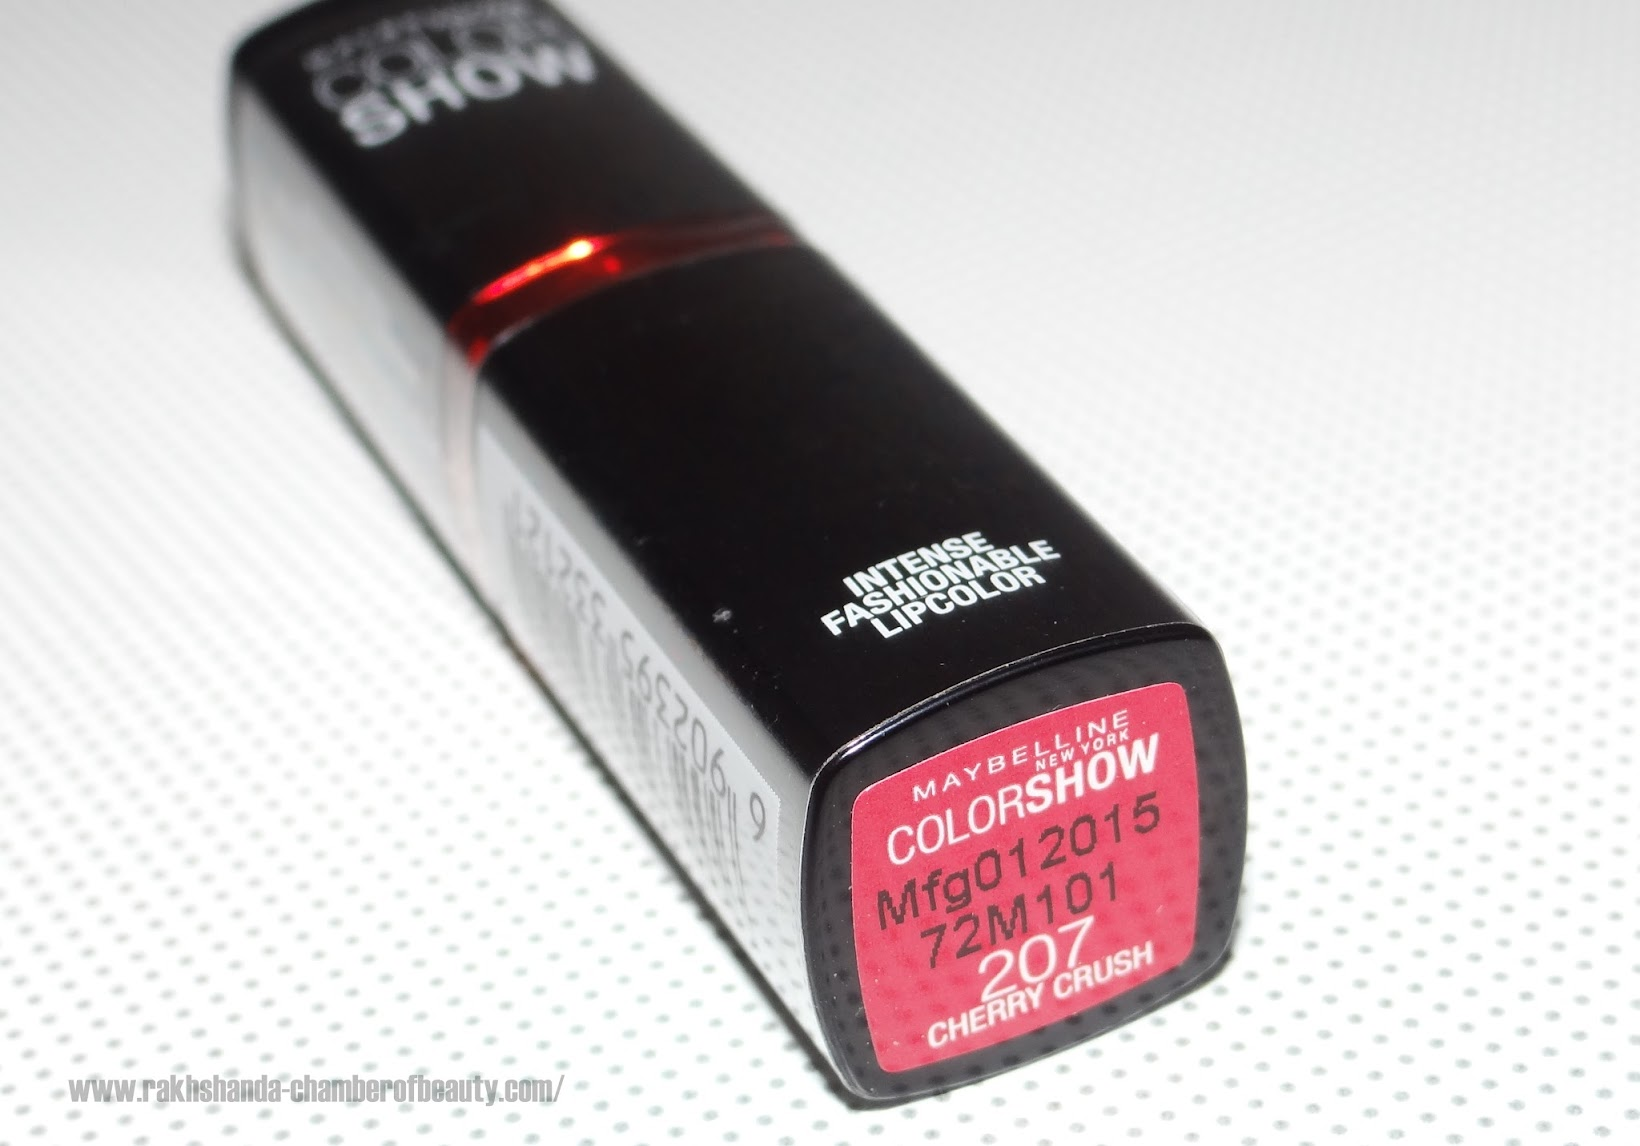 Maybelline Color Show lipstick in Cherry Crush-review, swatches